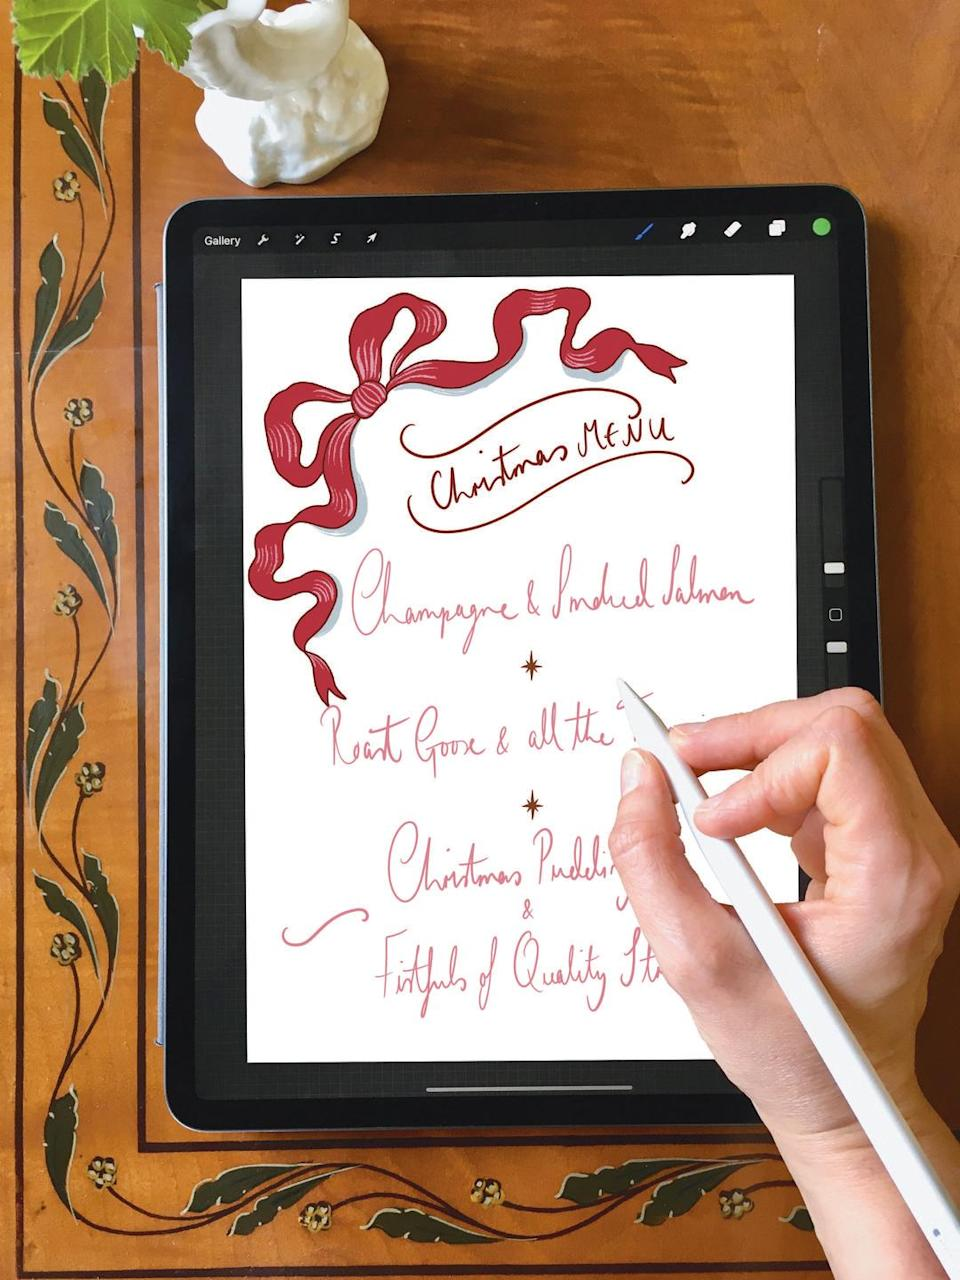 """<p>The London-based designer and illustrator Isla Simpson is offering the perfect gift for the enthusiastic host. Under her careful tuition, you'll learn to craft your own hand-designed menus, place cards and table decorations for dinner parties, weddings and more. Drawing novices are welcome: the only requirements are an iPad, an Apple pencil and the app Procreate 5X. Enjoy the online course at your own pace and learn a lifelong skill to bring your table settings to the next level. AD</p><p>£140, <a href=""""http://www.islasimpson.co.uk"""" rel=""""nofollow noopener"""" target=""""_blank"""" data-ylk=""""slk:Isla Simpson"""" class=""""link rapid-noclick-resp"""">Isla Simpson</a></p>"""